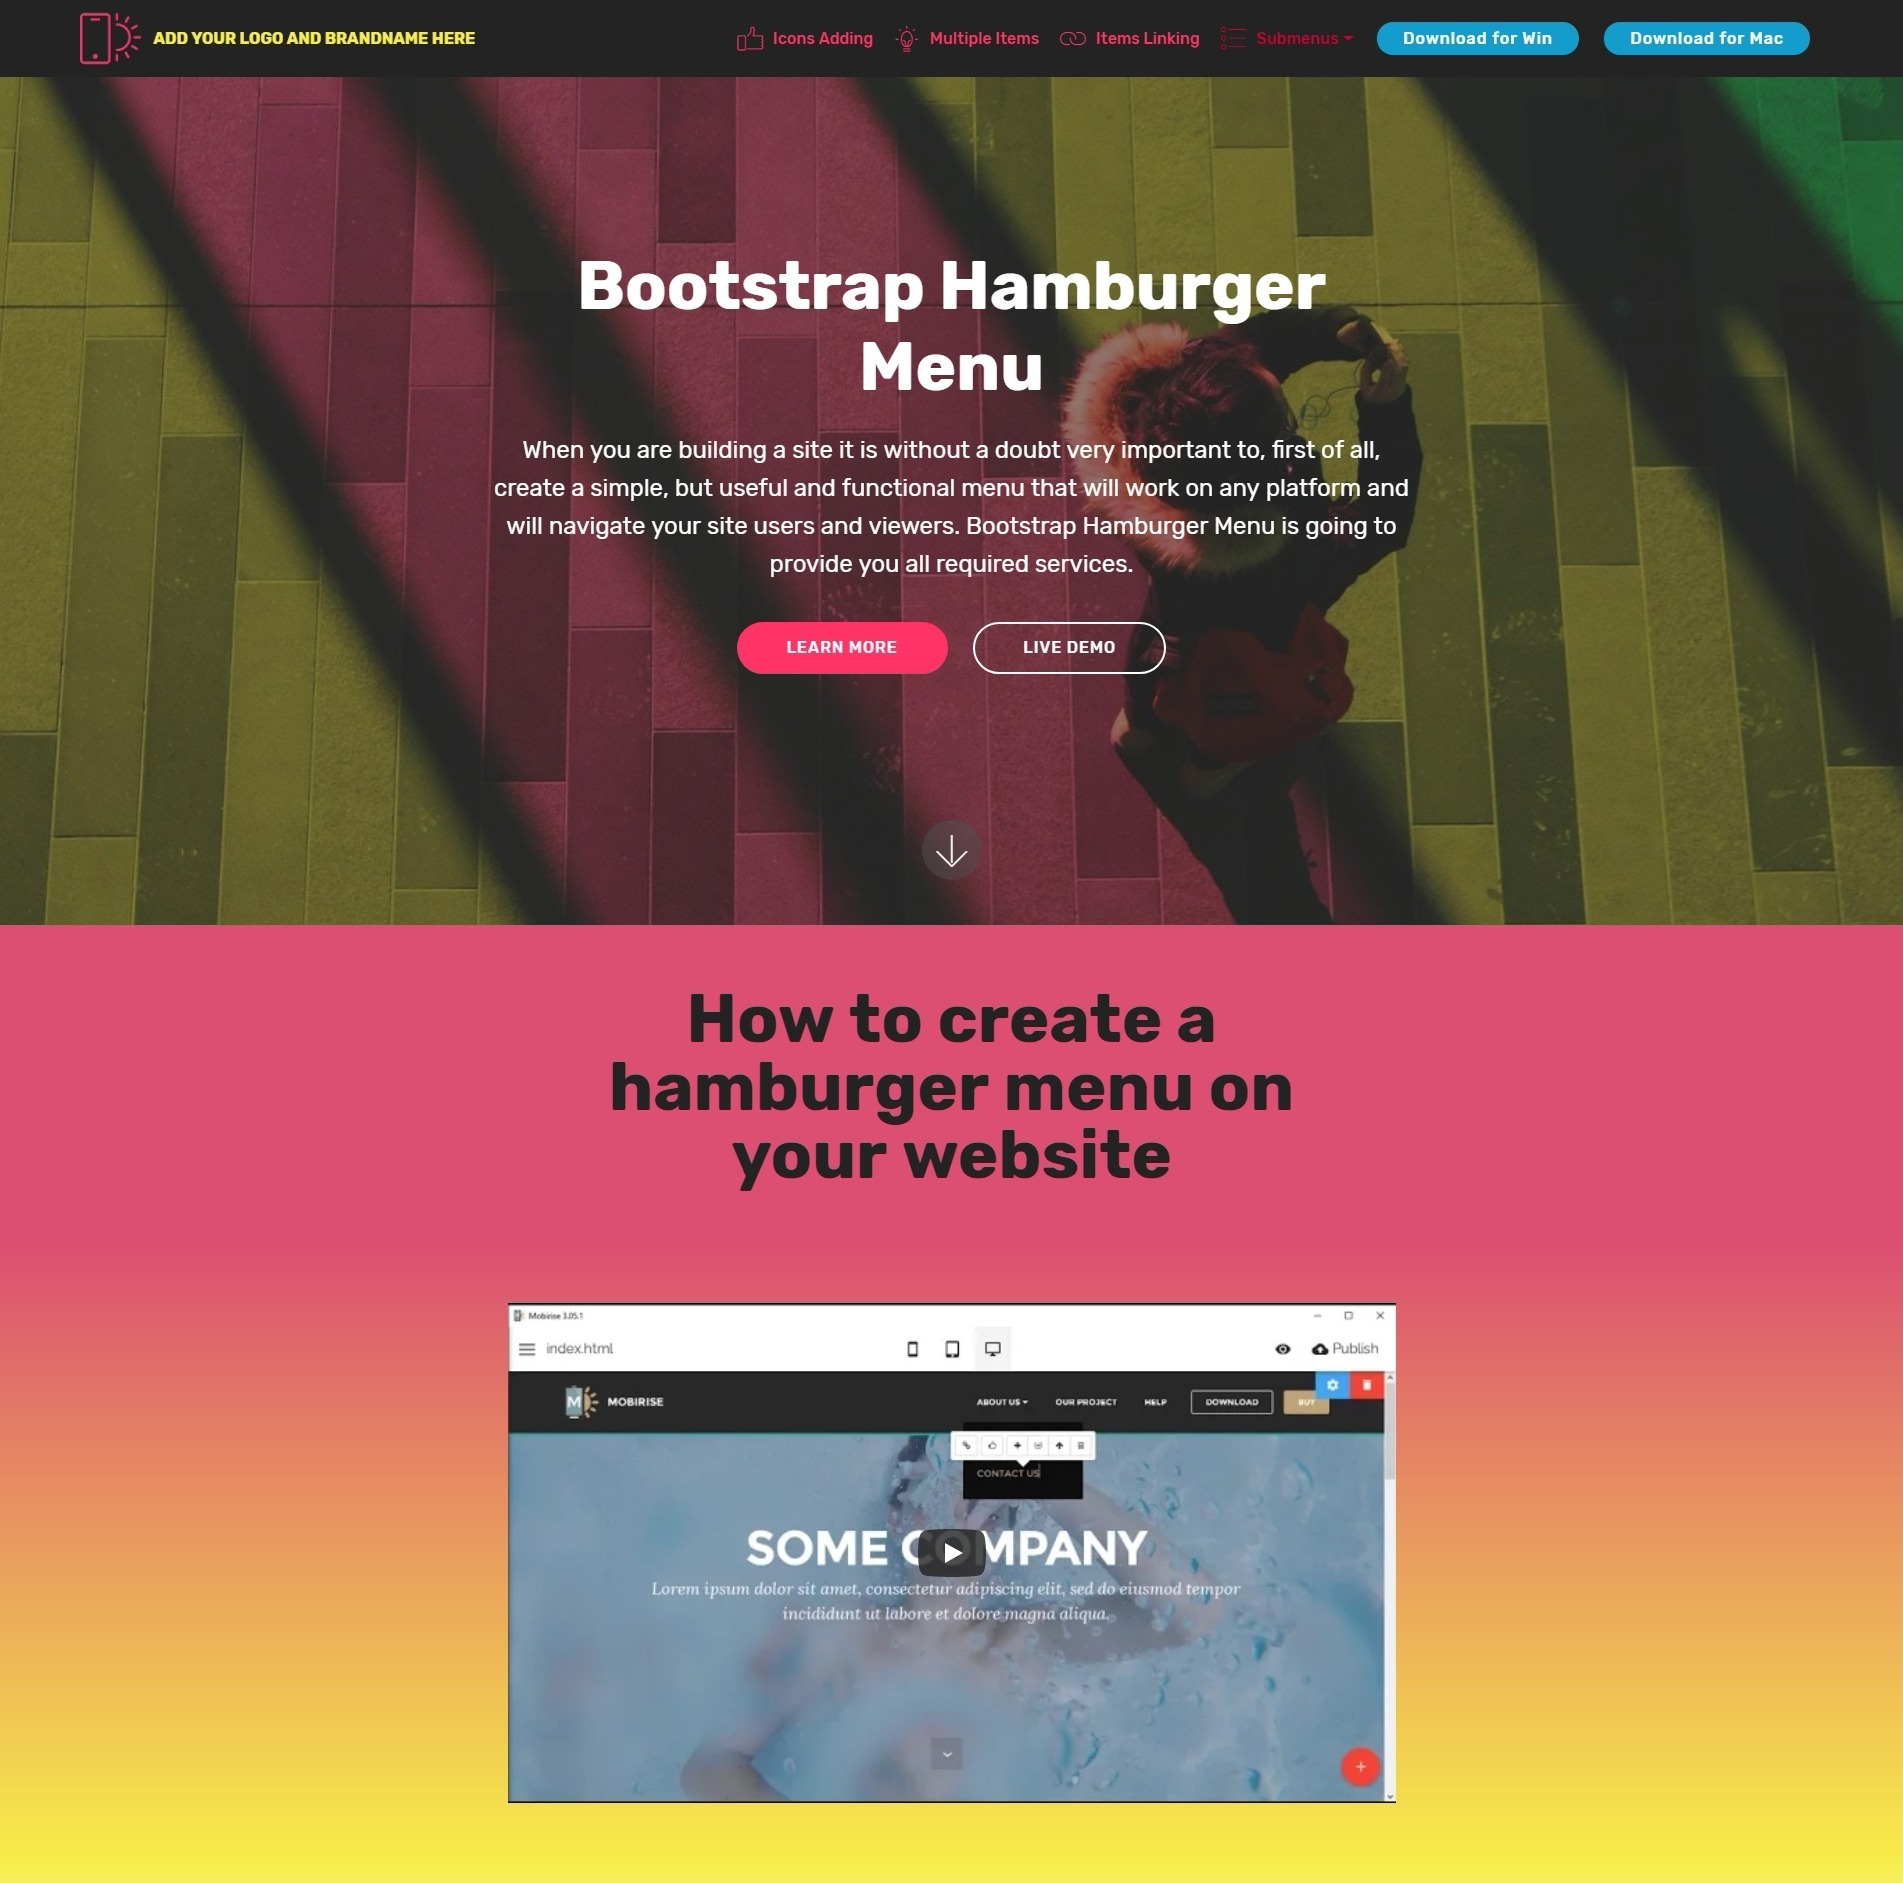 Bootstrap Hamburger Menu